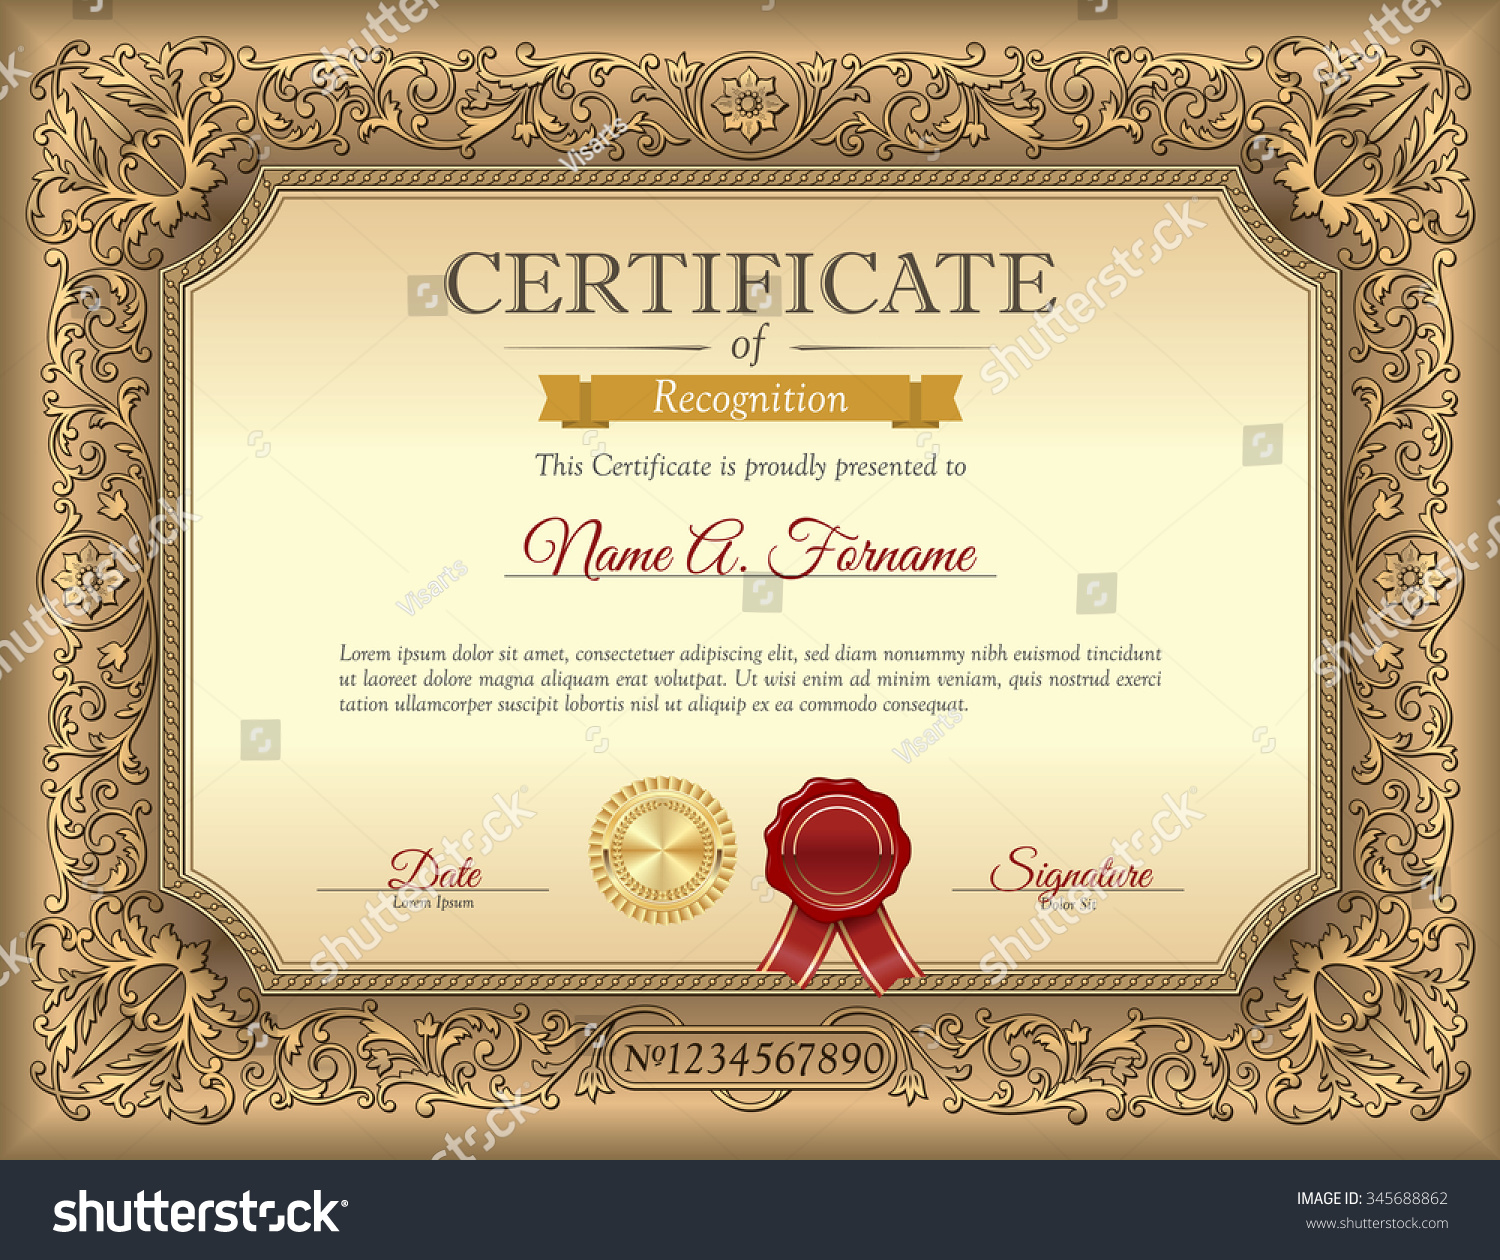 Vintage certificate of recognition template with ornament frame vintage certificate of recognition template with ornament frame yelopaper Image collections